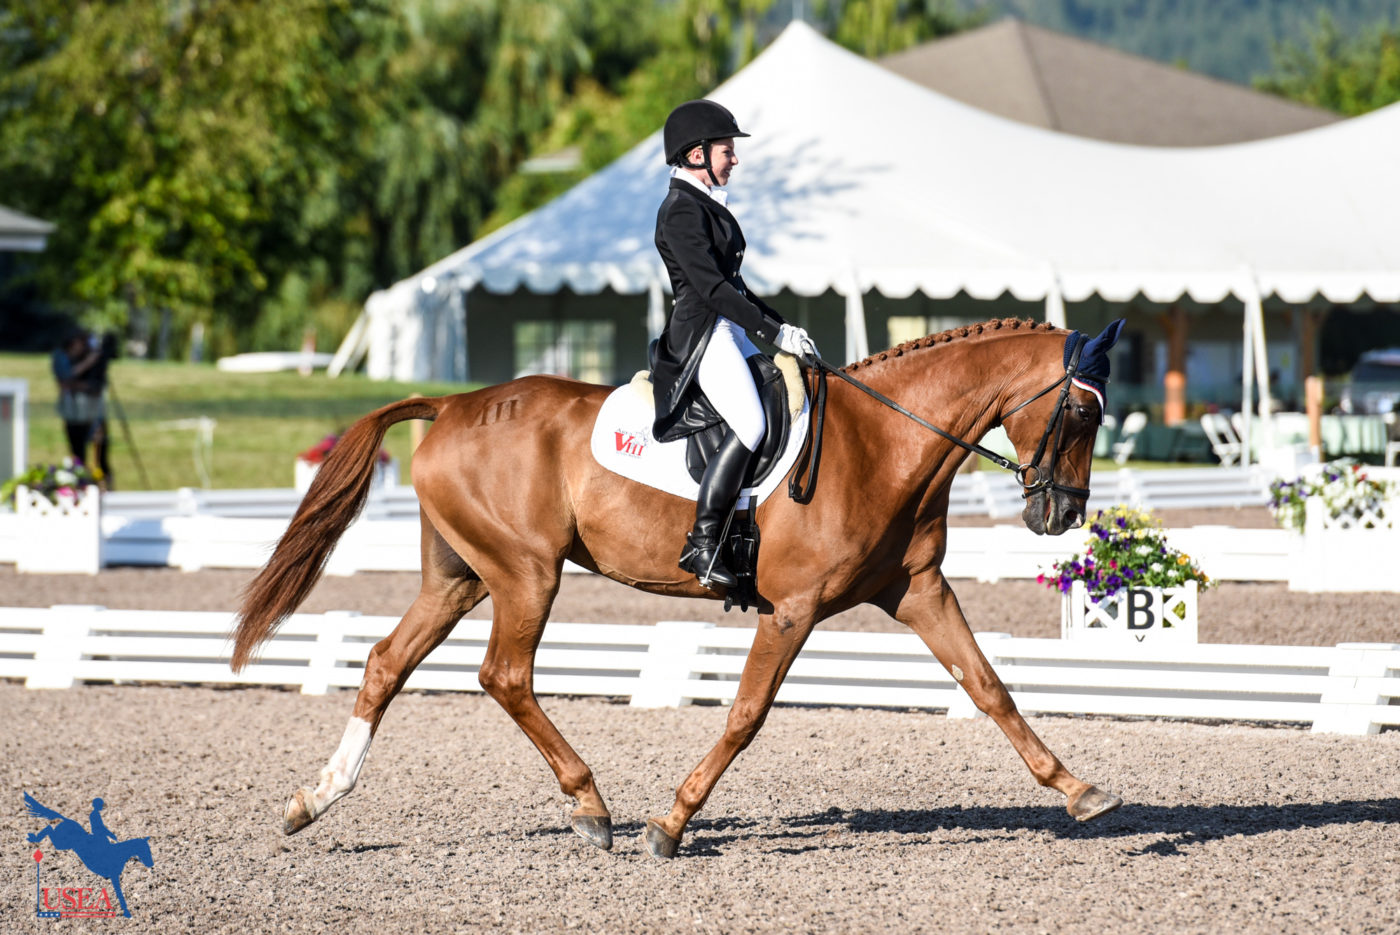 1st - Alexandra Baugh and Ballingowan Pizazz - 30.8